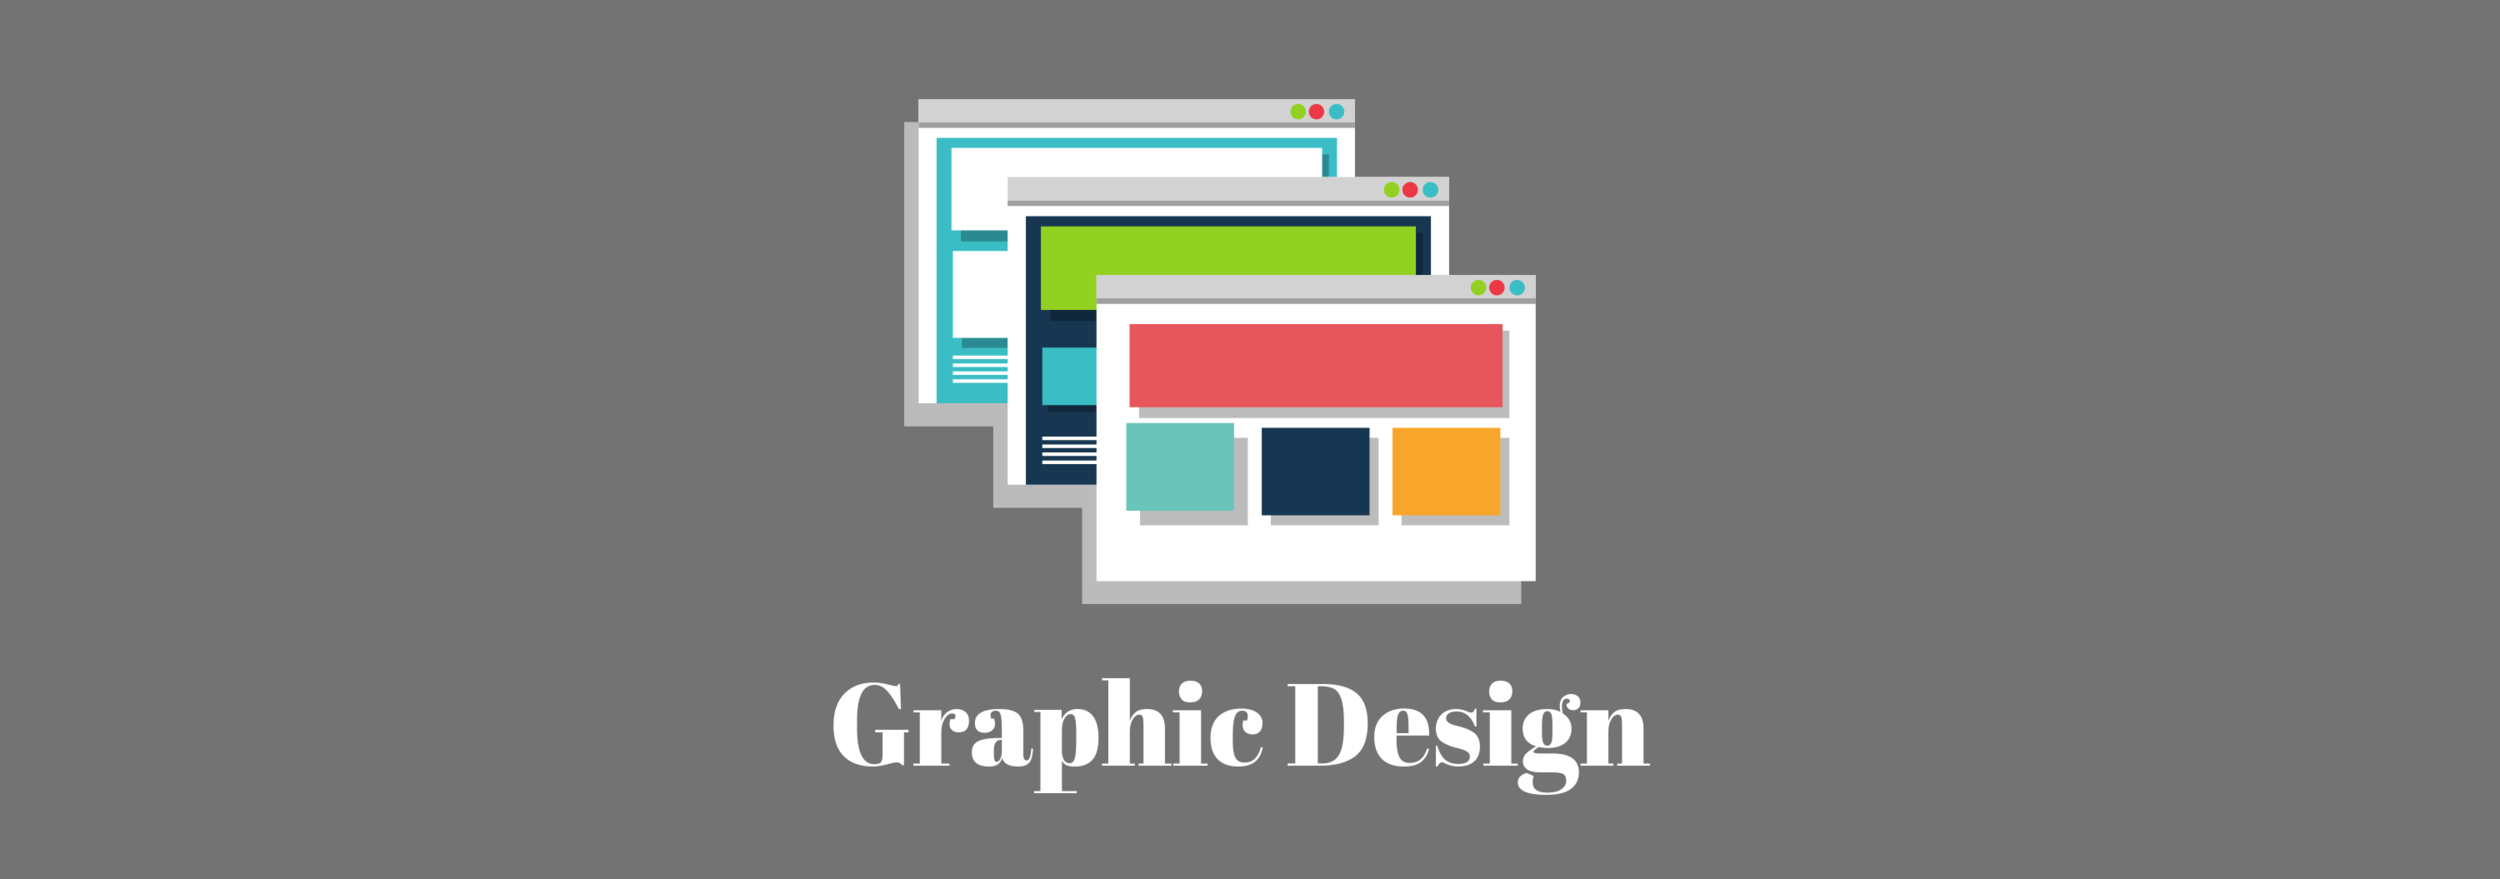 Graphic Design (1).png